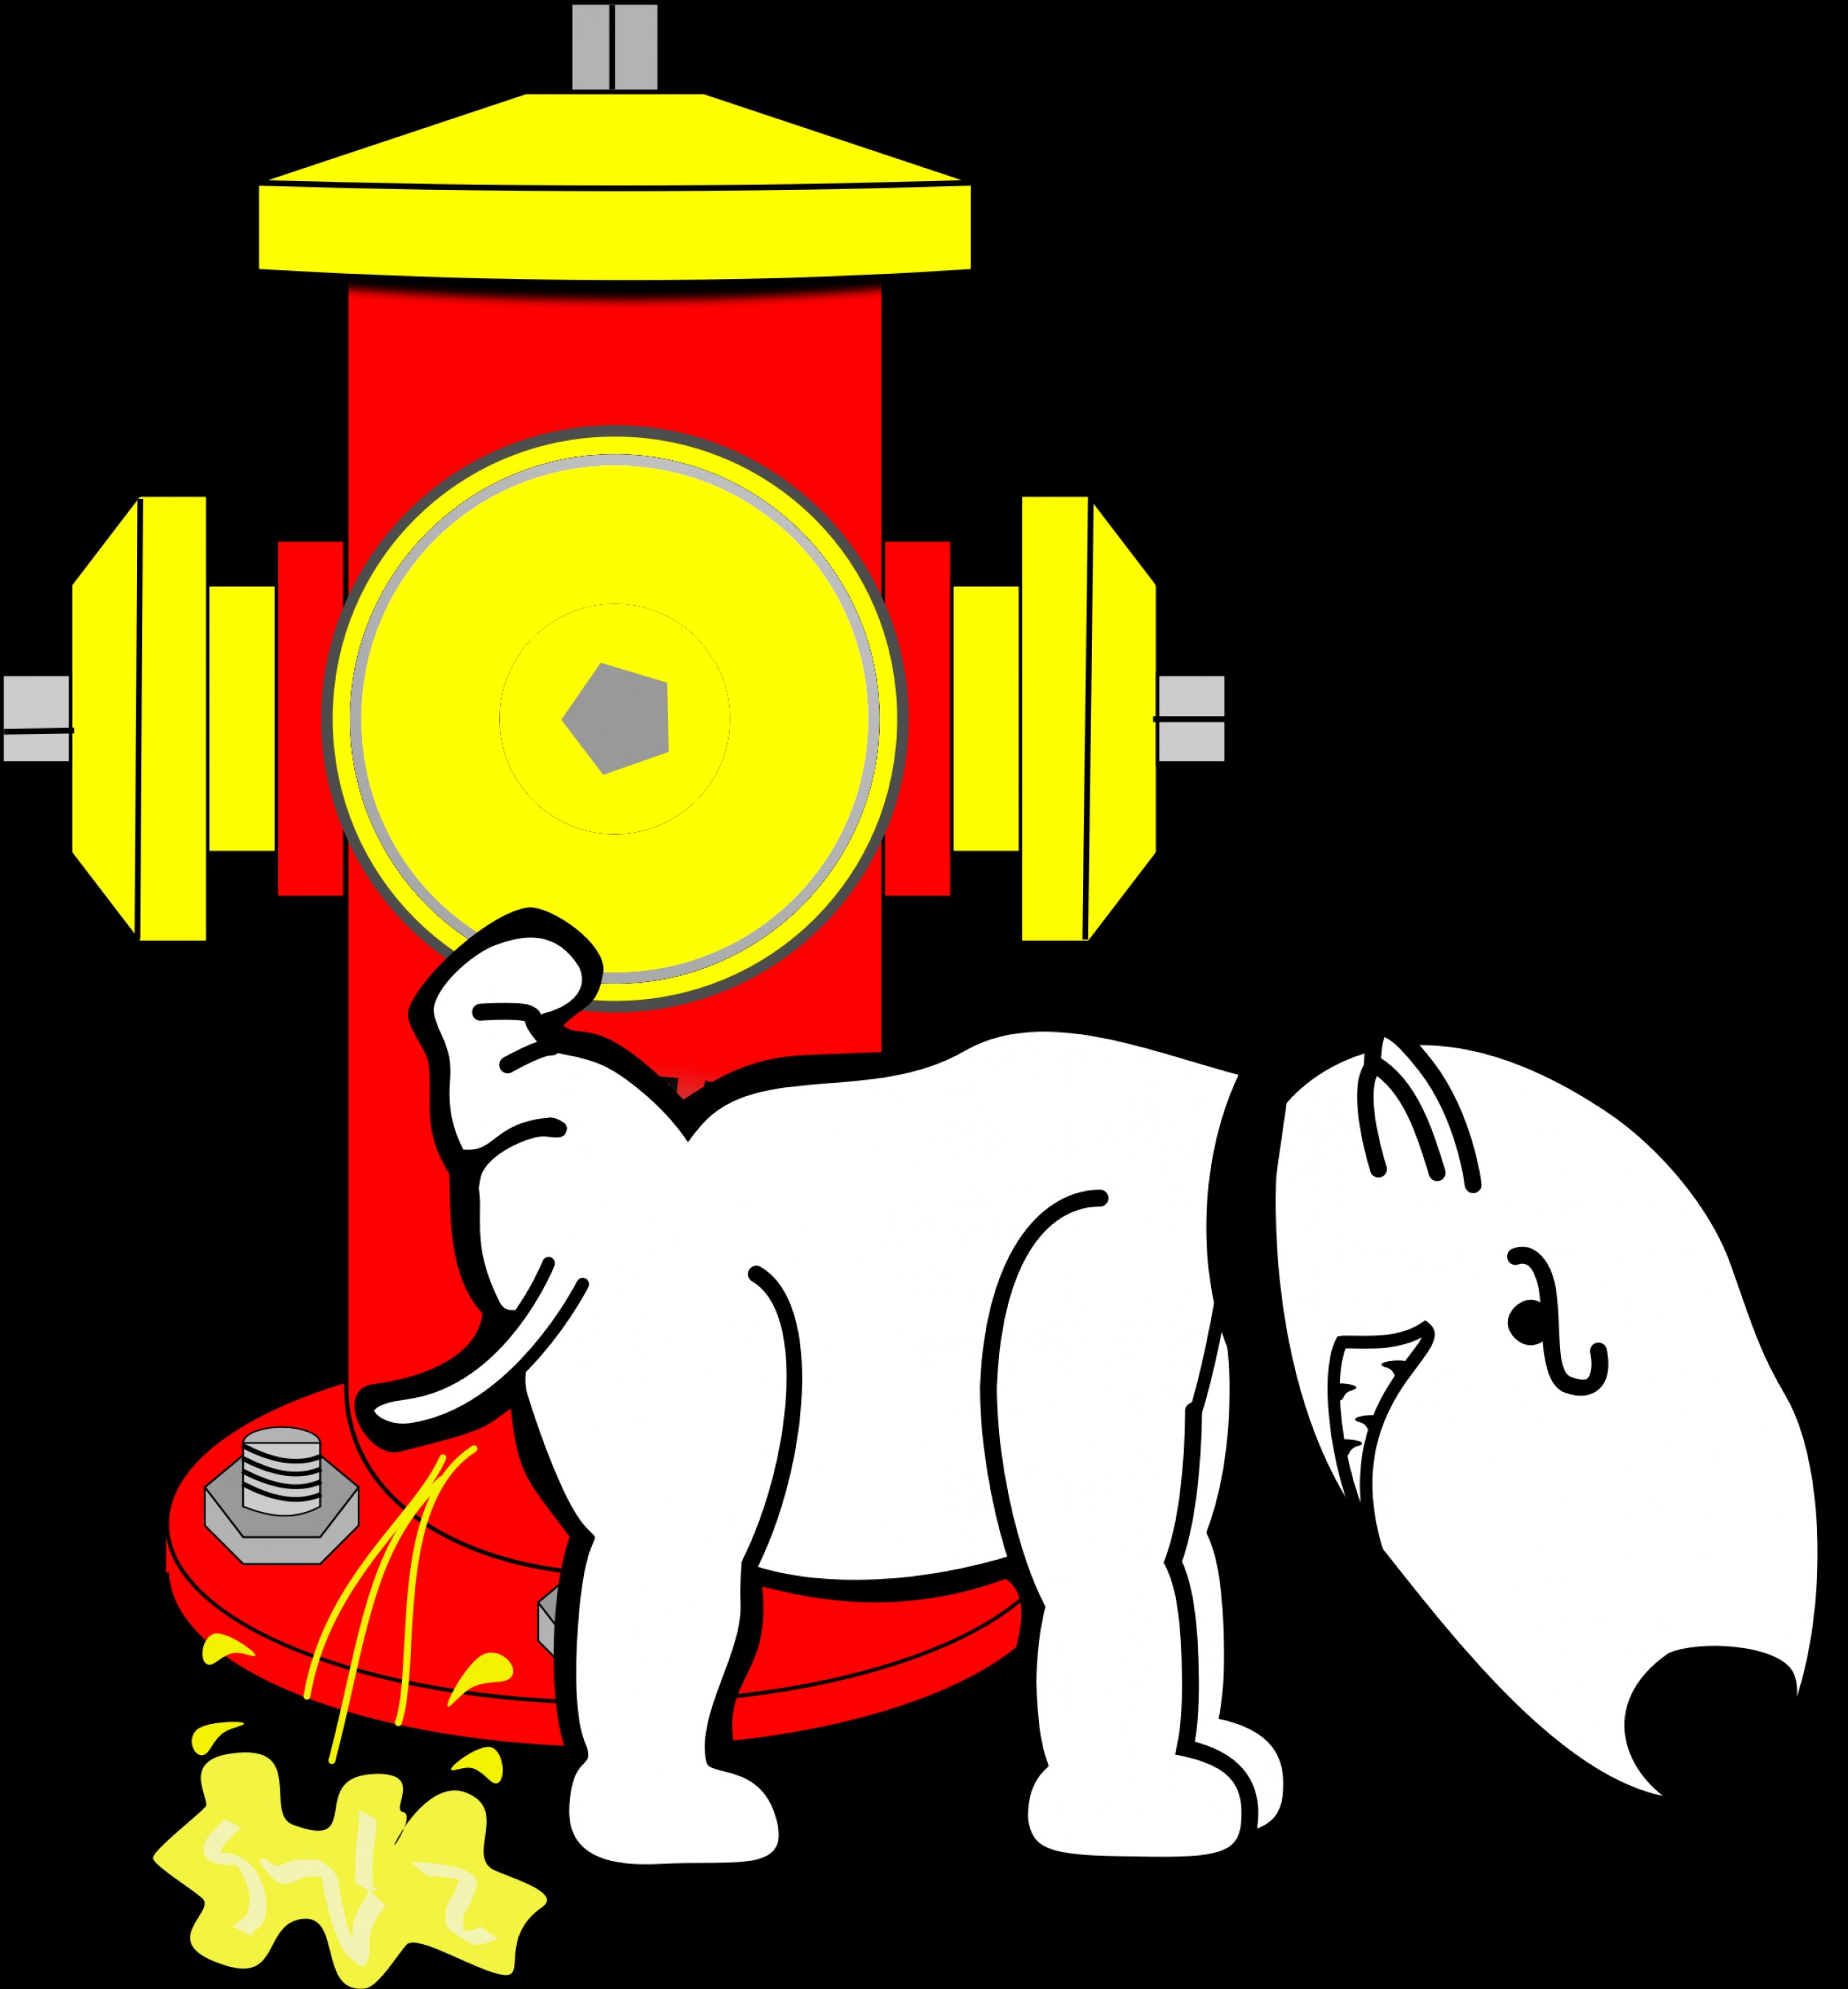 Pee On Clip Art Vector Graphic: Dog Peeing On Fire Hydrant Vector Clipart